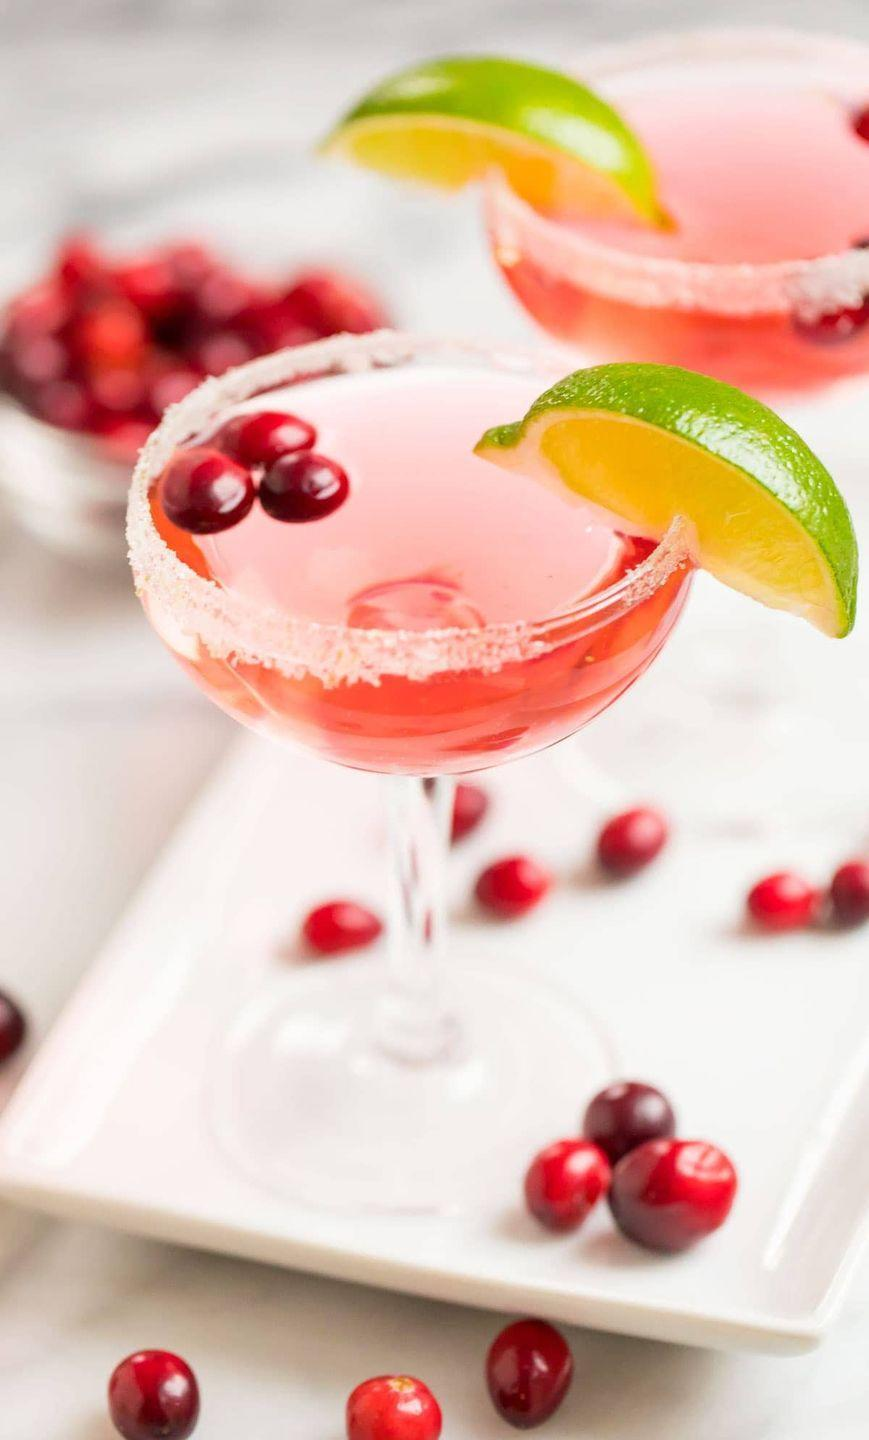 "<p>The secret to this take on the cosmo is <a href=""https://www.totalwine.com/spirits/liqueurscordialsschnapps/herbal-spice/floral/st-germain-elderflower-liqueur/p/102301750"" rel=""nofollow noopener"" target=""_blank"" data-ylk=""slk:St. Germain"" class=""link rapid-noclick-resp"">St. Germain</a>, an elderflower liqueur that gives it surprising depth.</p><p><strong>Get the recipe at <a href=""https://www.wellplated.com/st-germain-cocktail/"" rel=""nofollow noopener"" target=""_blank"" data-ylk=""slk:Well Plated by Erin"" class=""link rapid-noclick-resp"">Well Plated by Erin</a>.</strong></p>"